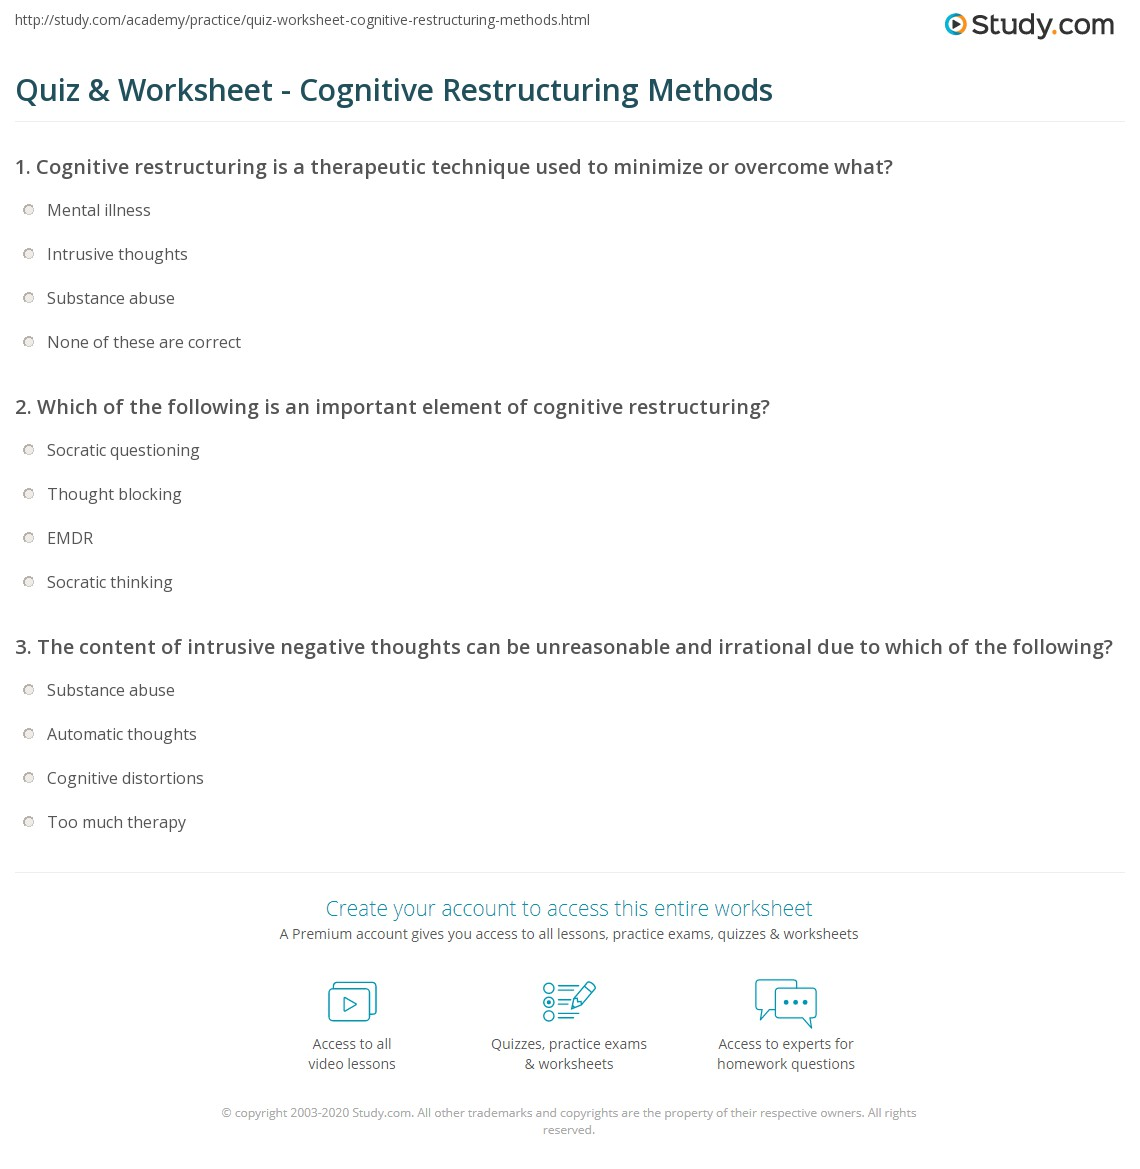 Quiz Worksheet Cognitive Restructuring Methods – Irrational Thoughts Worksheet